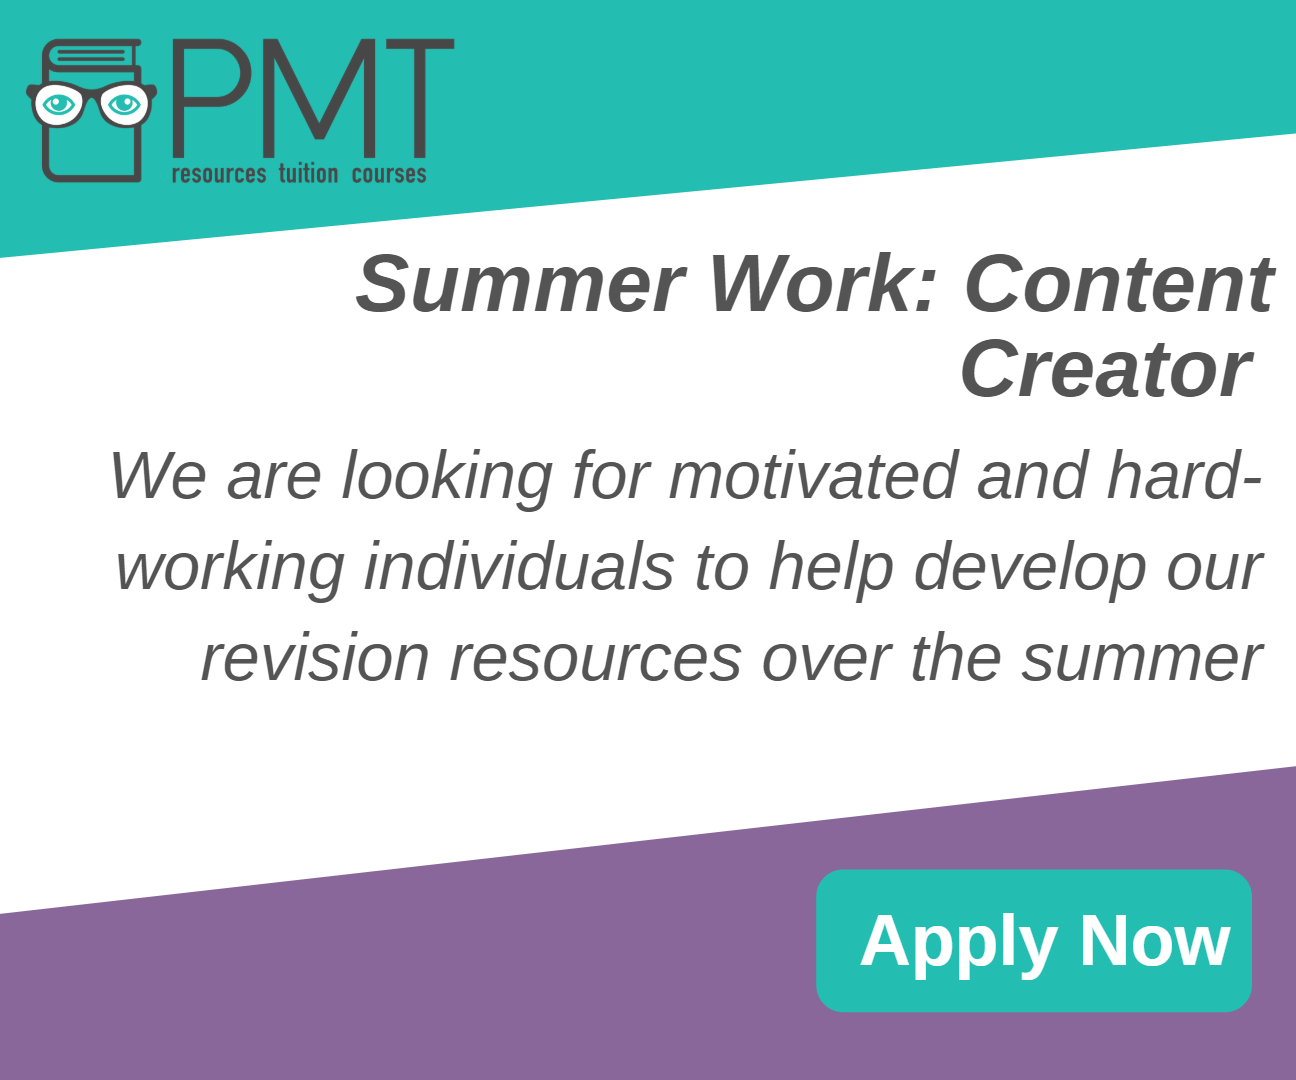 Summer Work at PMT Education